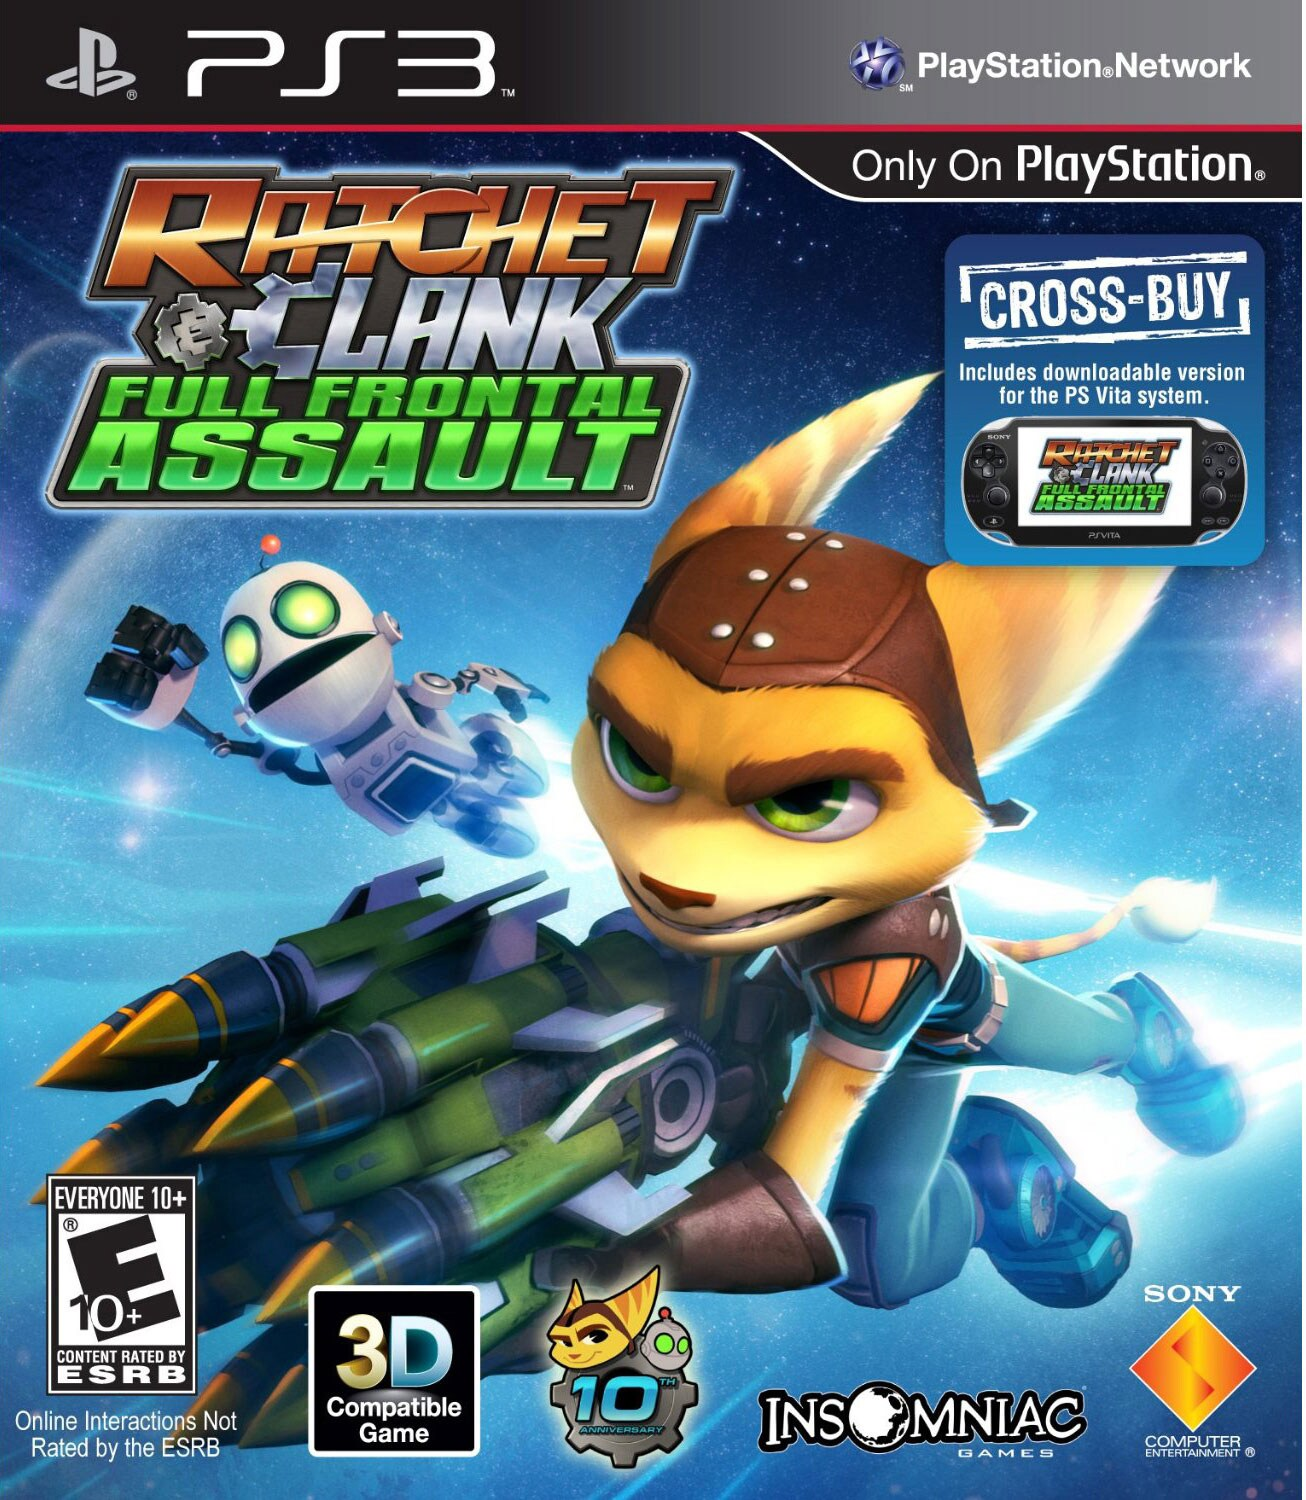 PS3 - Ratchet & Clank: Full Frontal Assault